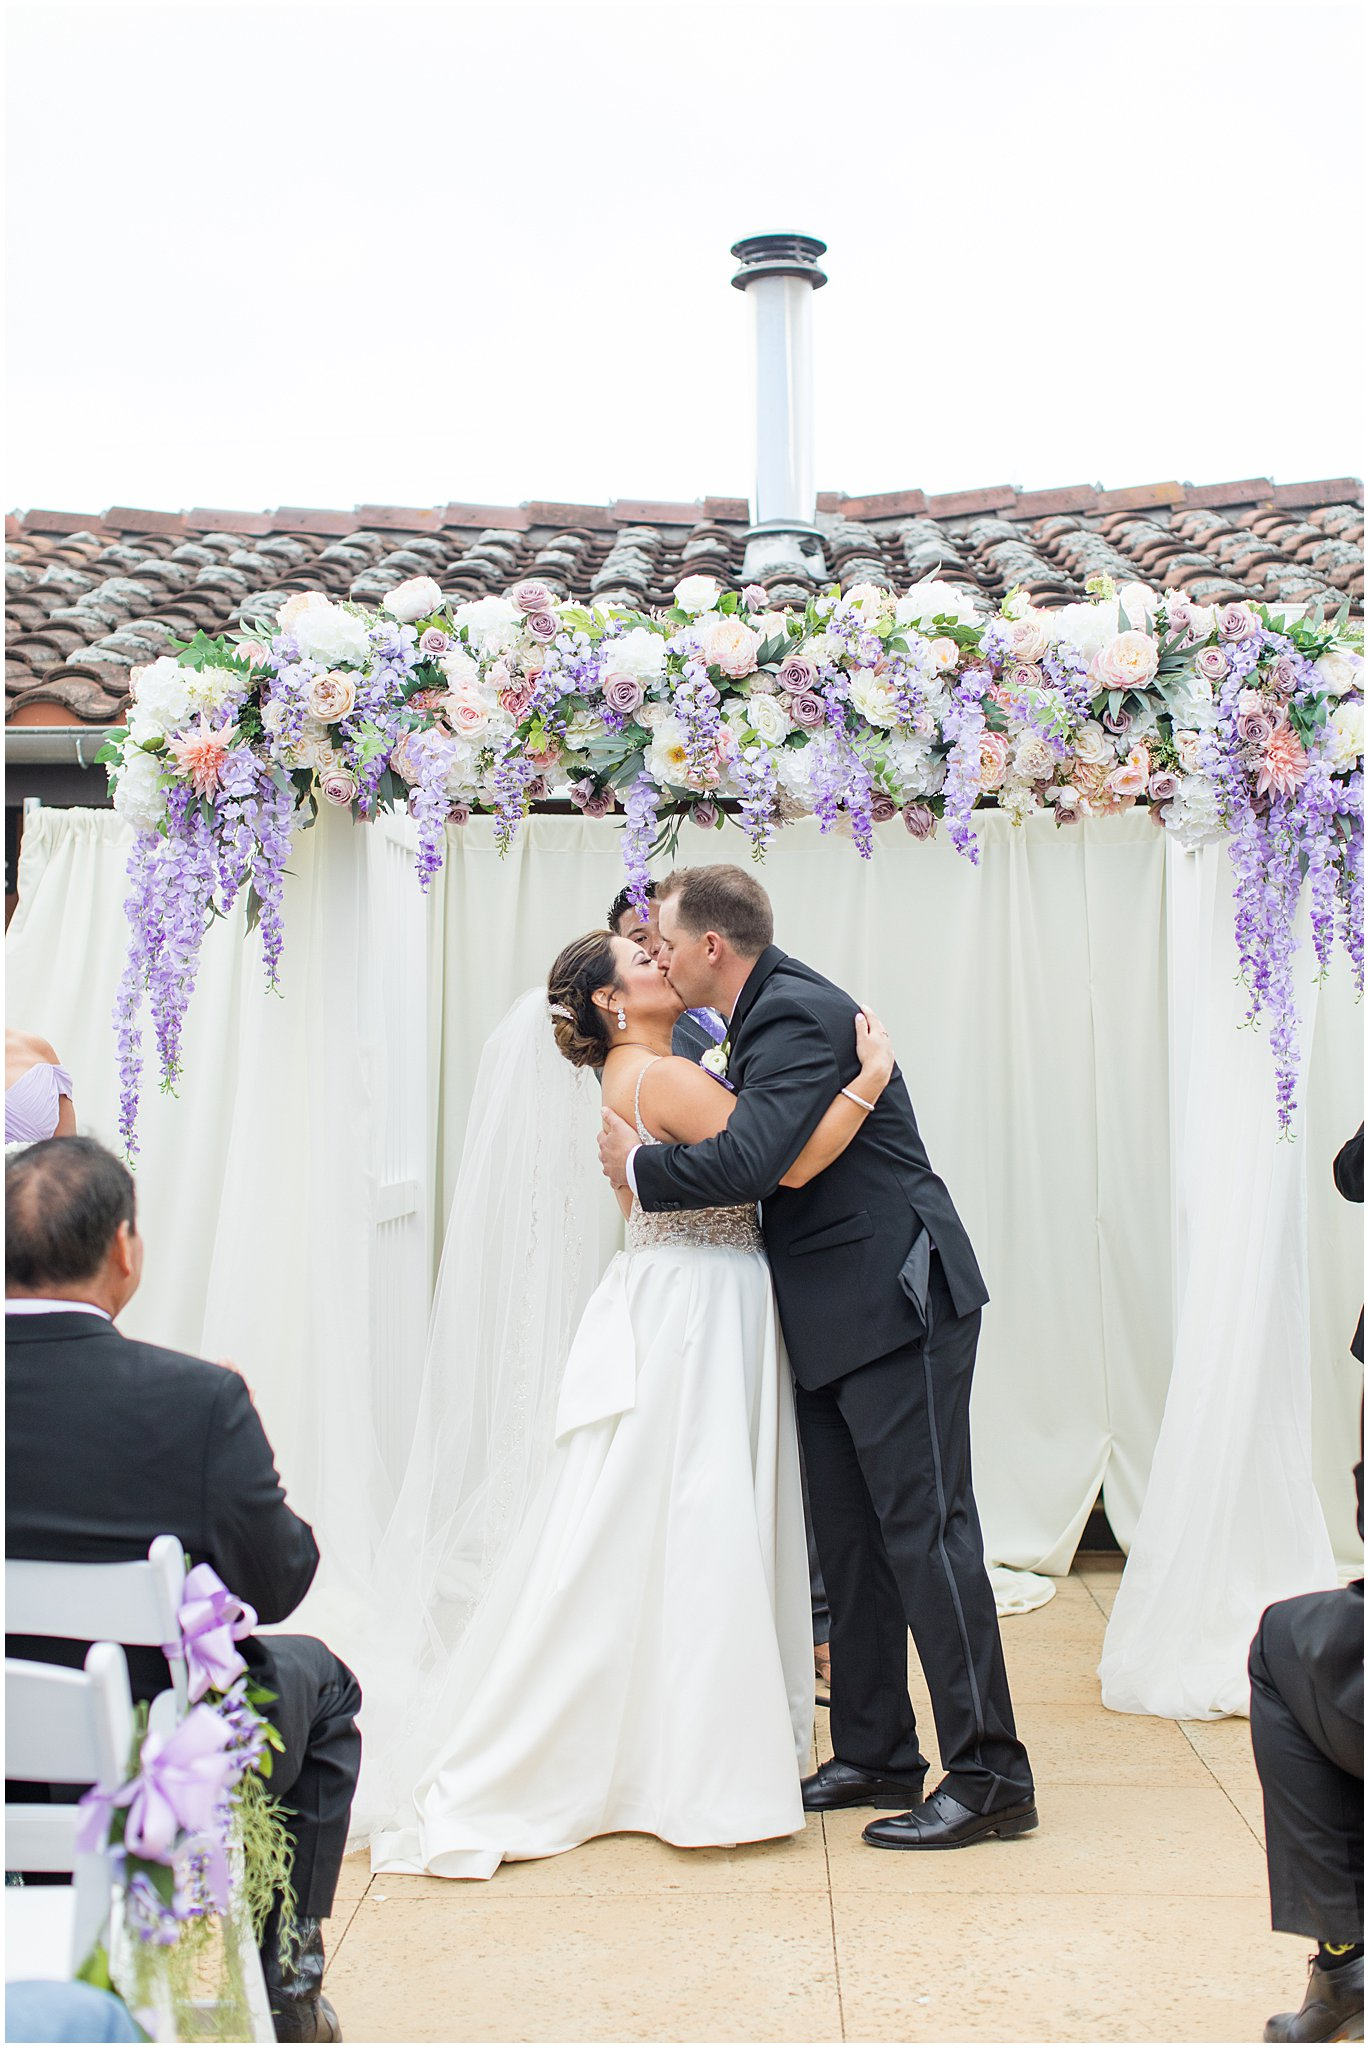 2019 wedding san juan bautista hacienda de leal vineyards bay area wedding photographer_0051.jpg